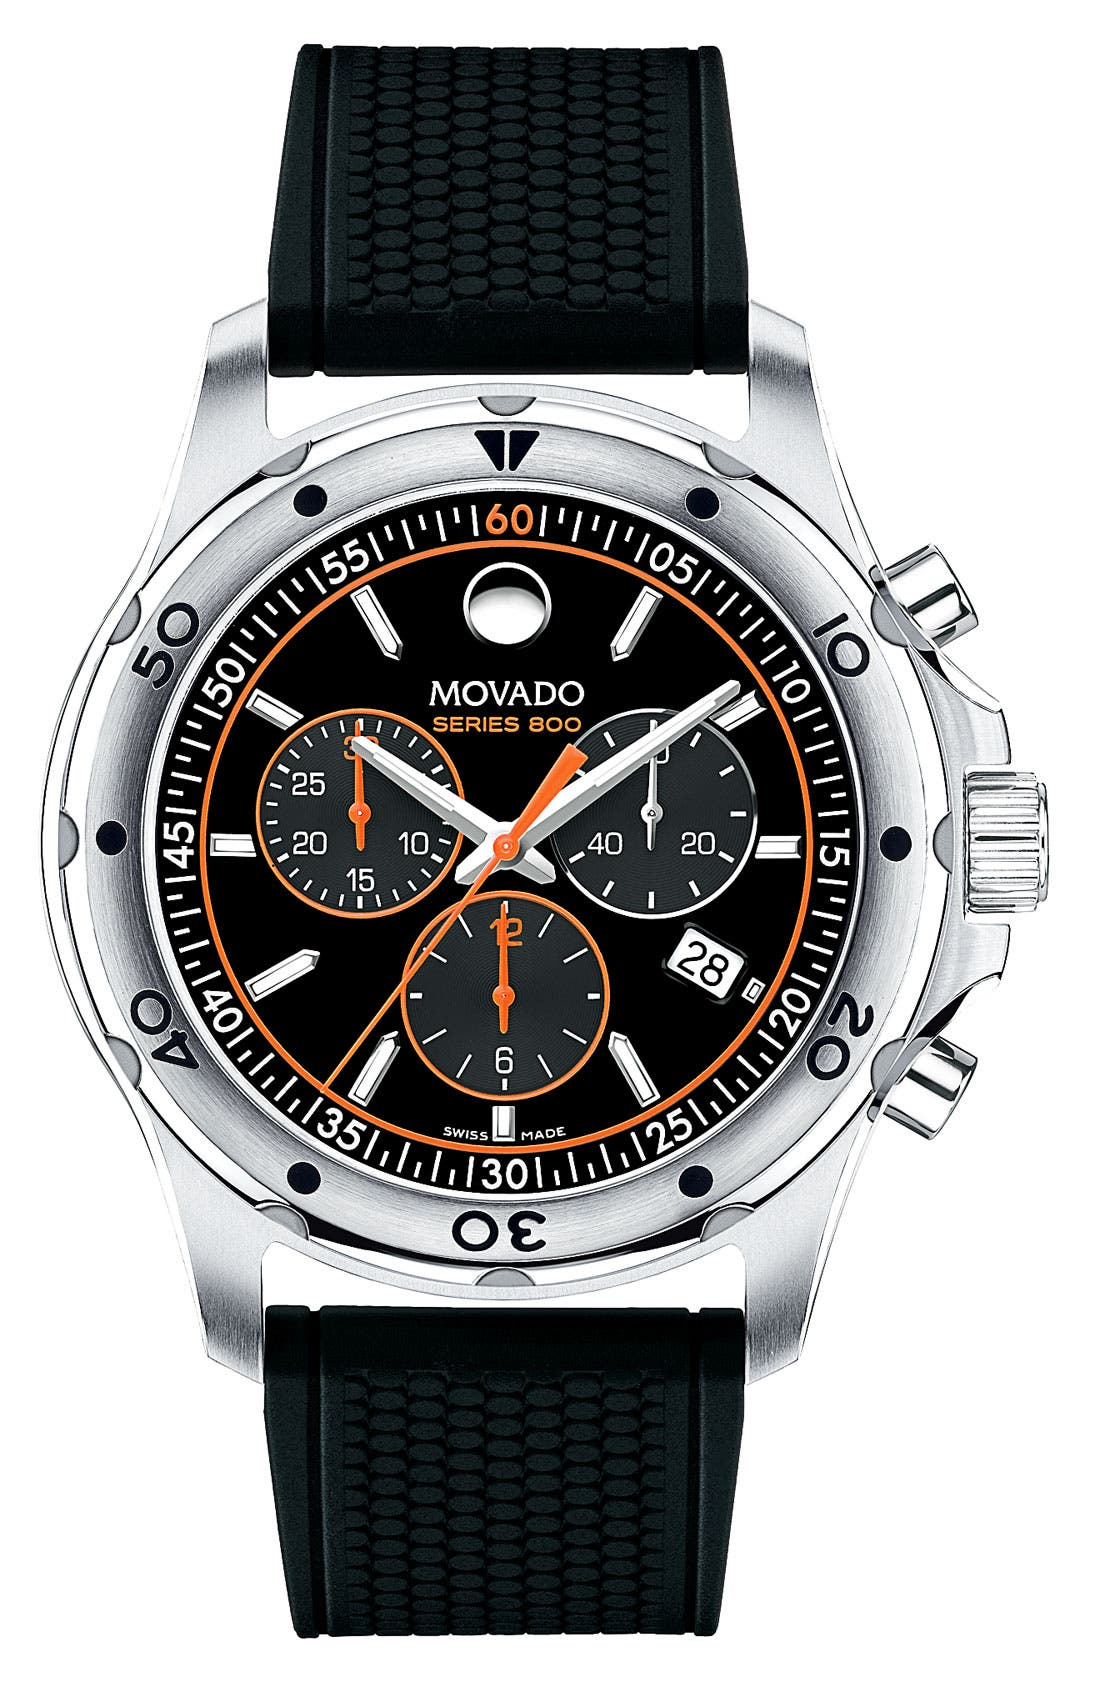 Main Image - Movado 'Series 800' Chronograph Rubber Strap Watch